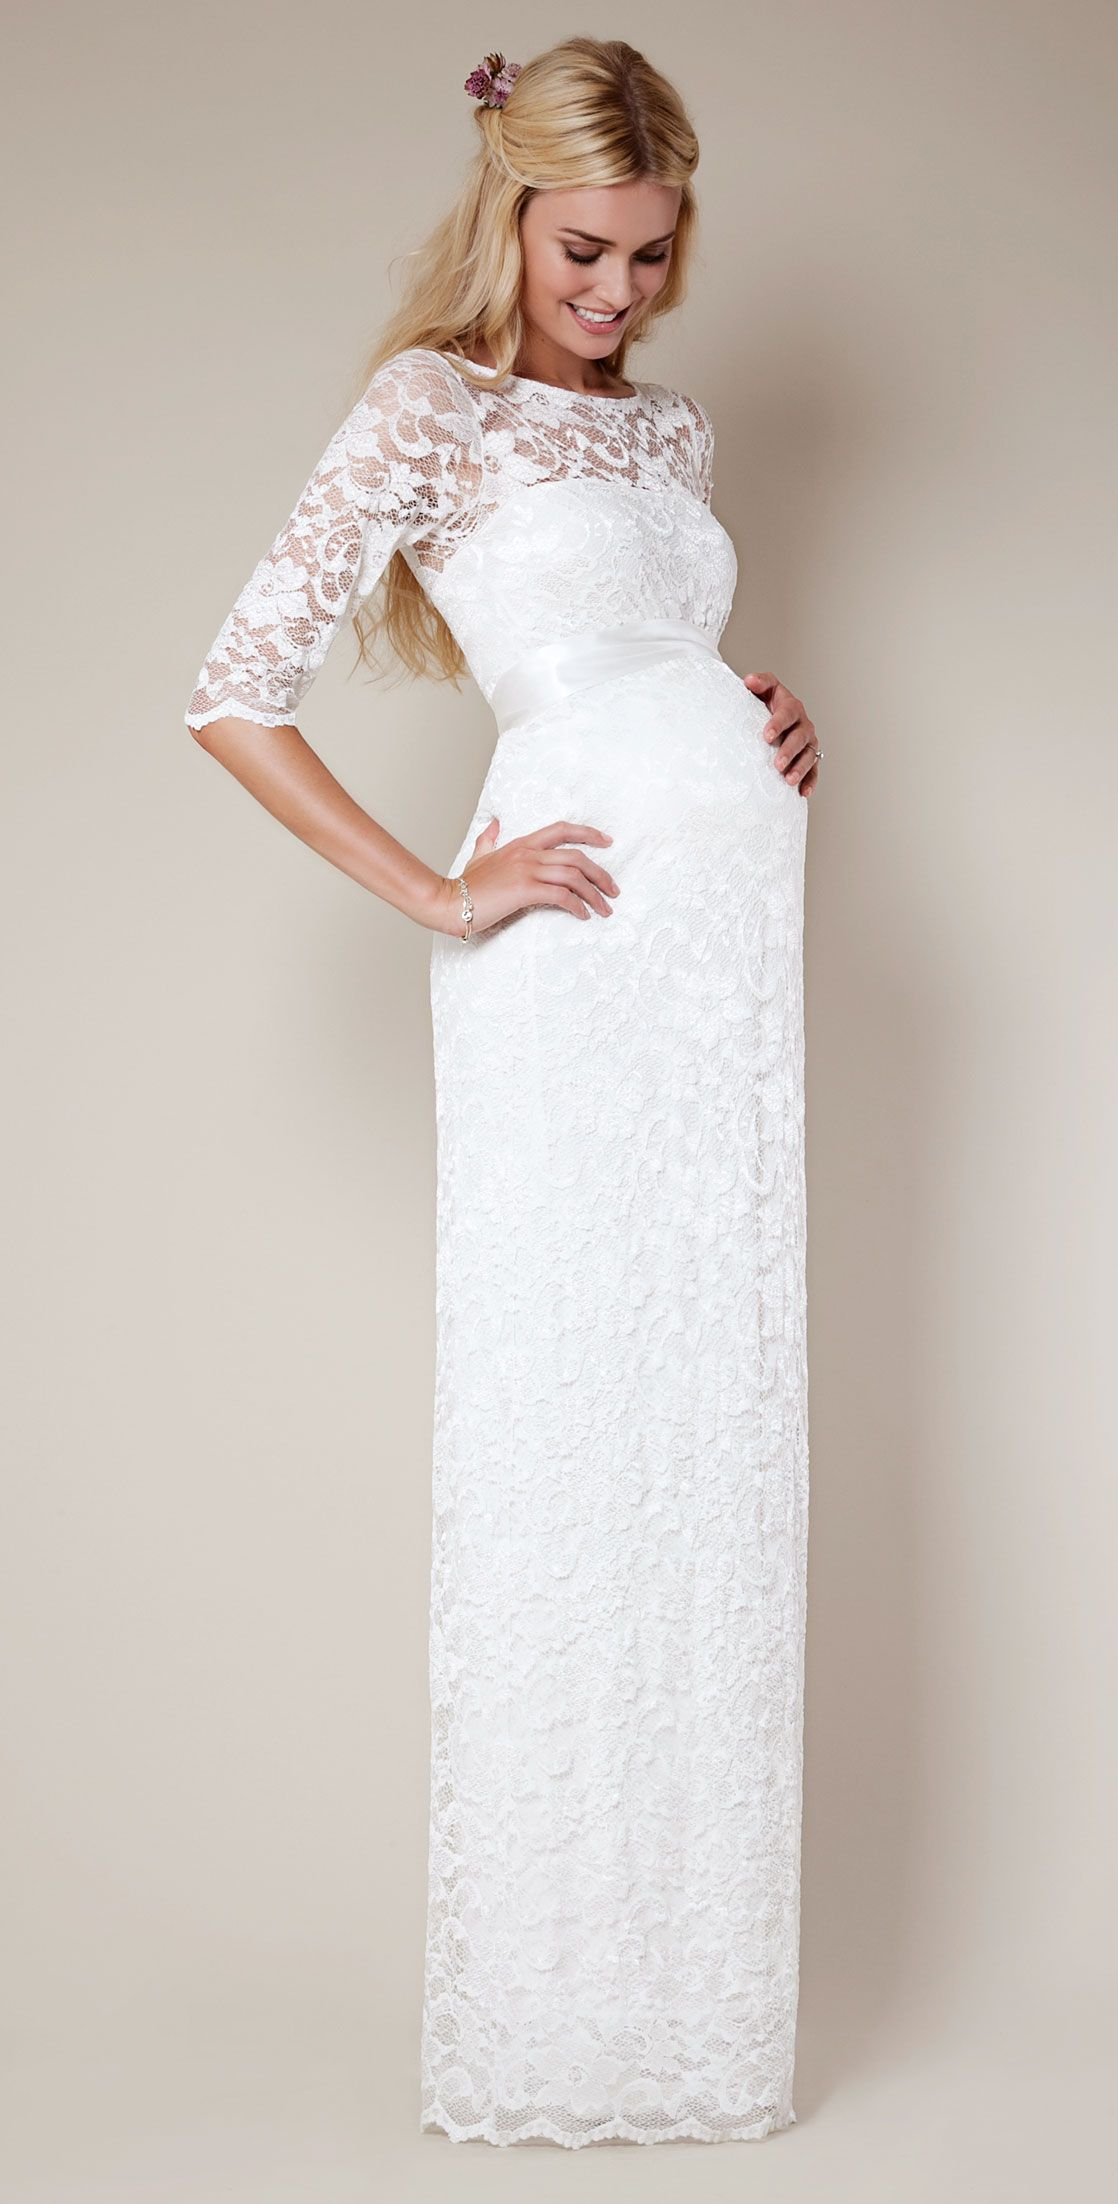 Amelia Lace Maternity Dress Long Ivory Wedding Dresses Evening Wear And Party Clothes By Tiffany Rose